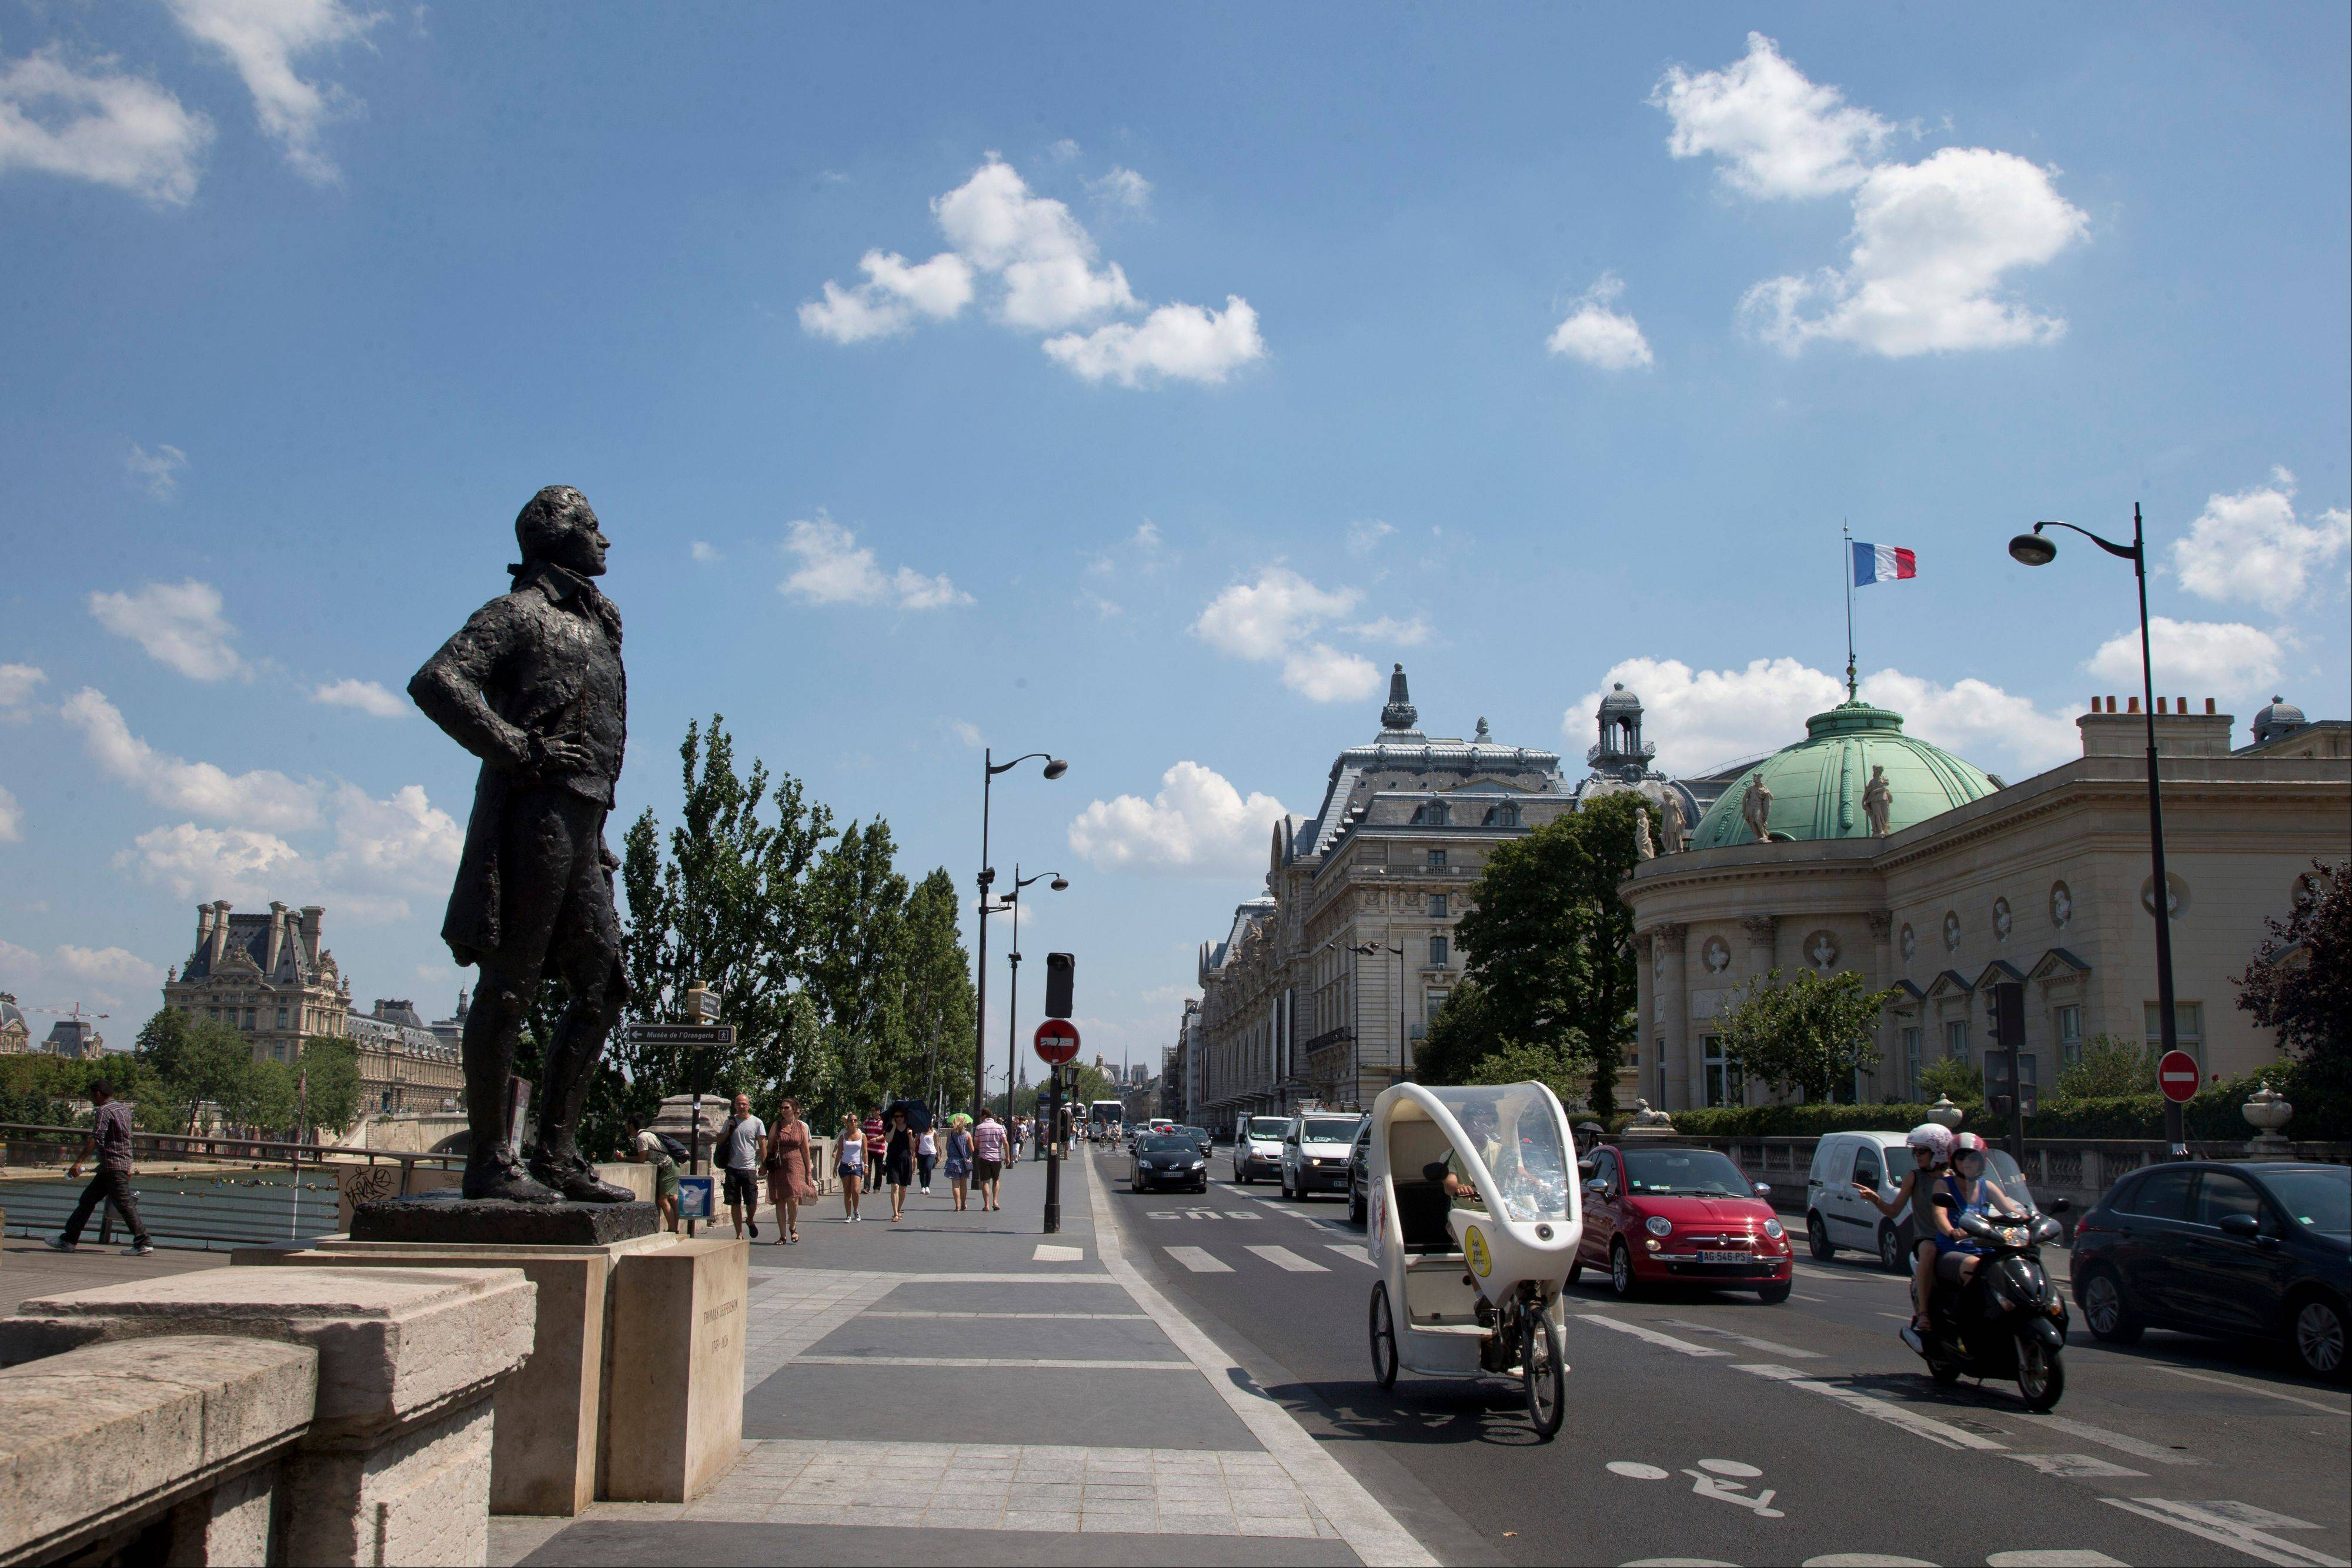 In this photo taken Friday, July 19, 2013, The Statue of Thomas Jefferson, faces the Legion of Honour building, right, in Paris. The building was the inspiration for Jefferson's Monticello house located just outside Charlottesville, Va.